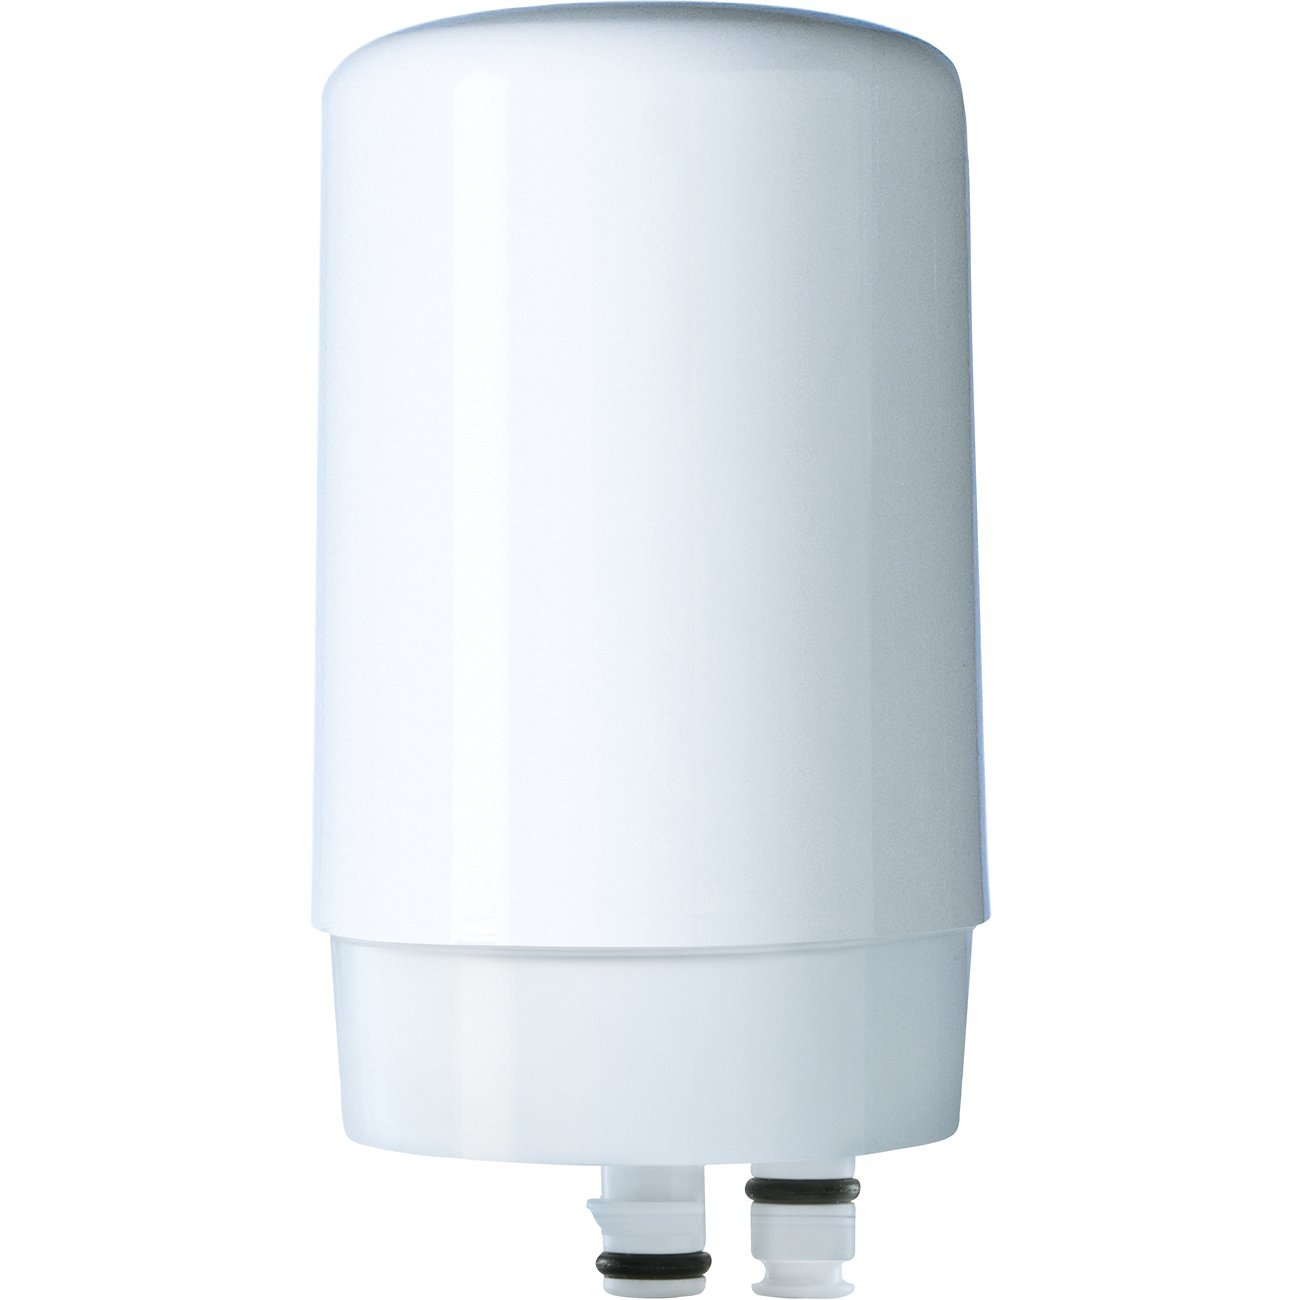 Brita On Tap Water Filtration System Replacement Filters For Faucets - White - 1 Count by Brita